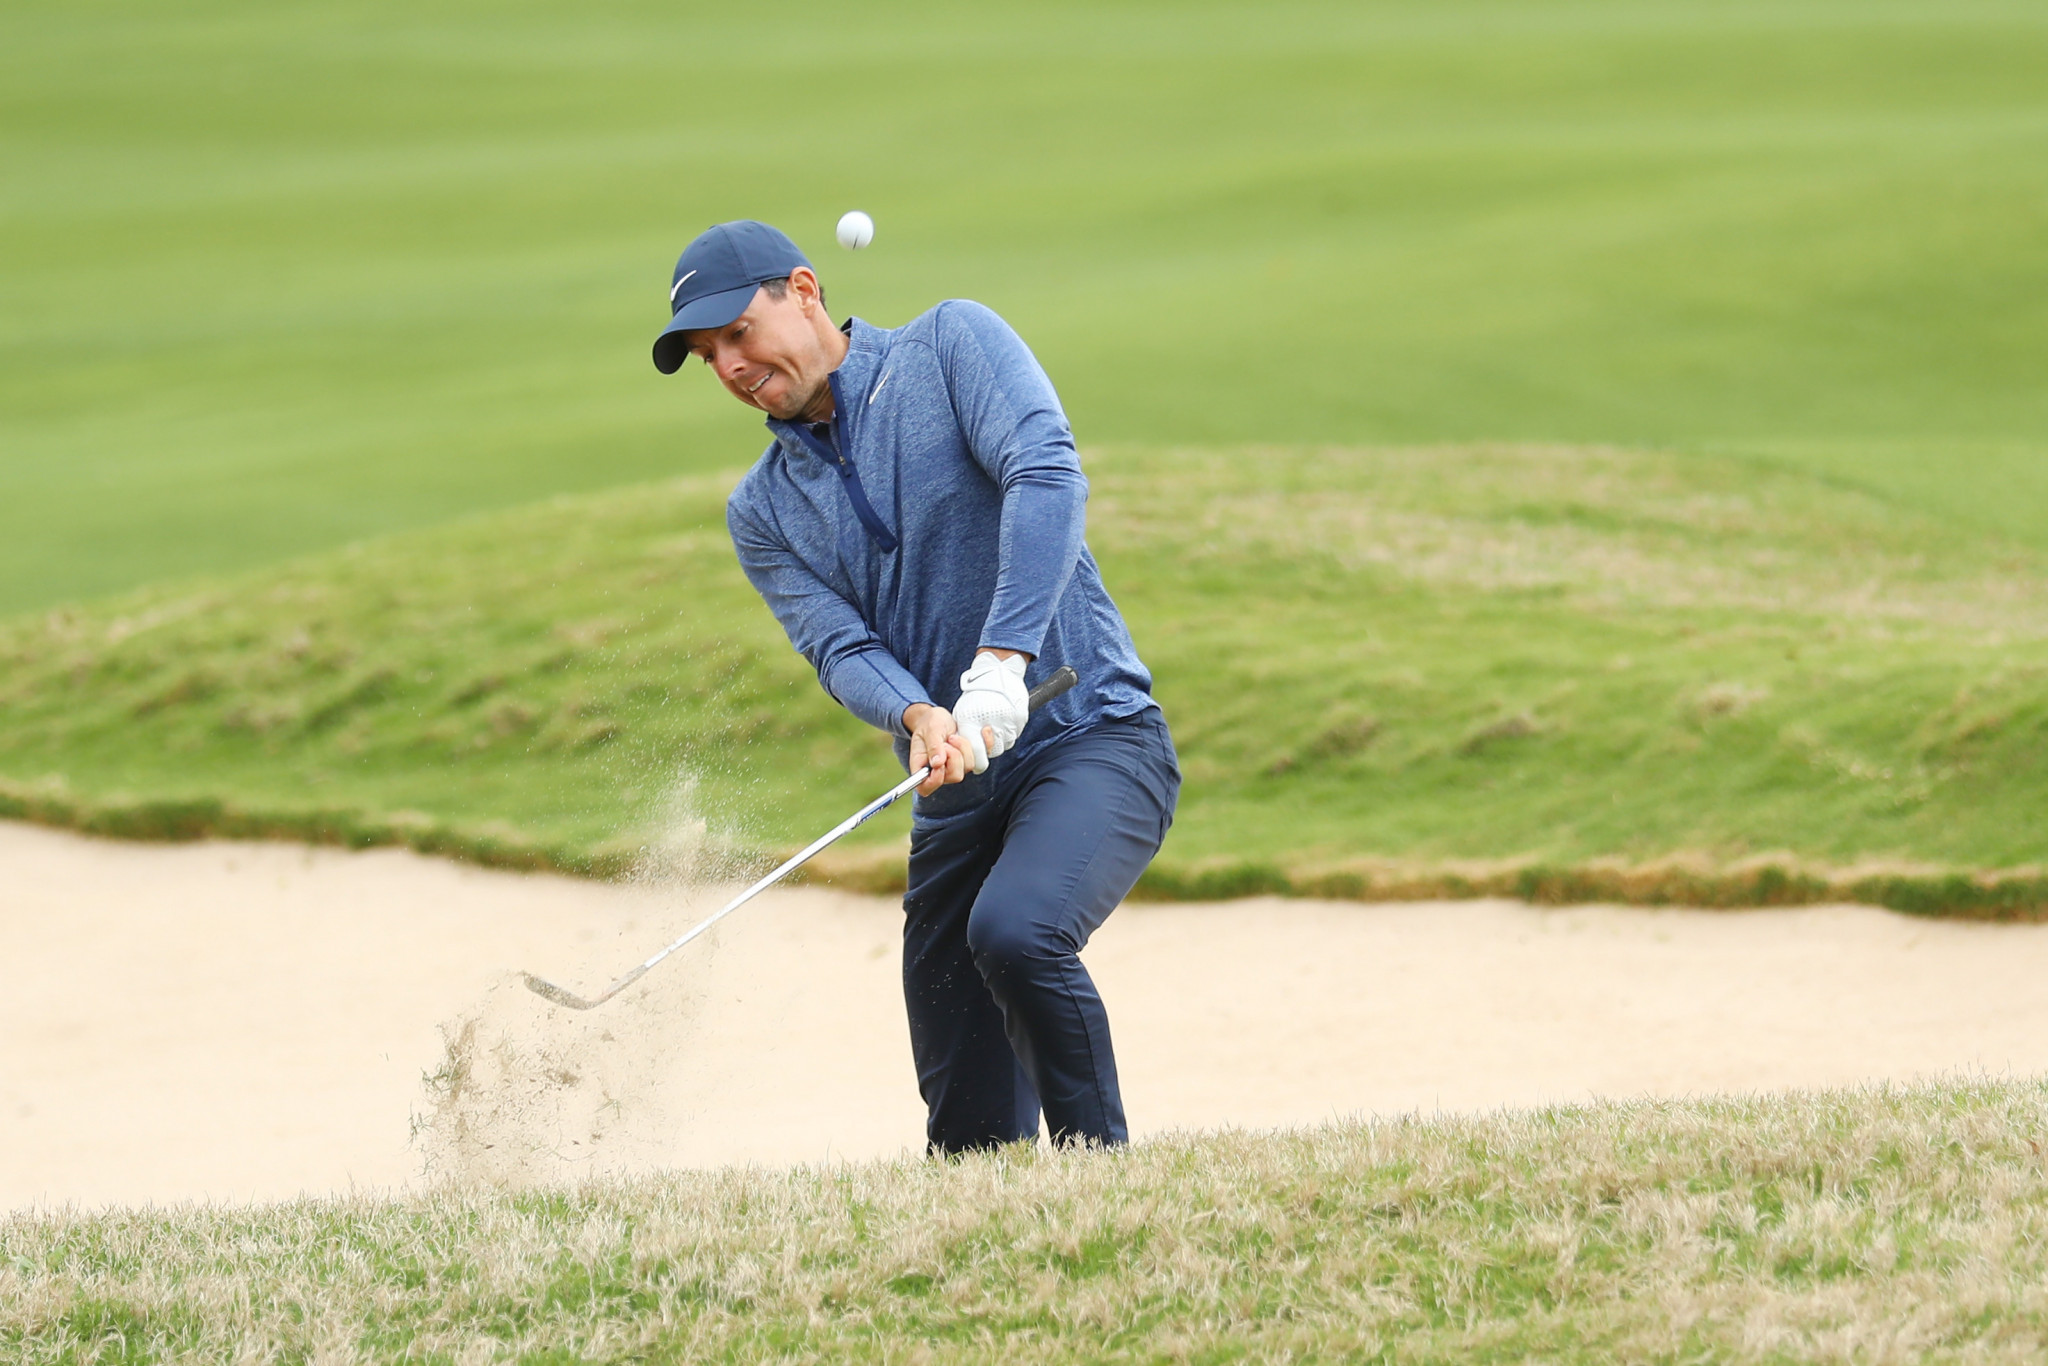 Rory McIlroy is set to be one of the star attractions at the Open Championship ©Getty Images